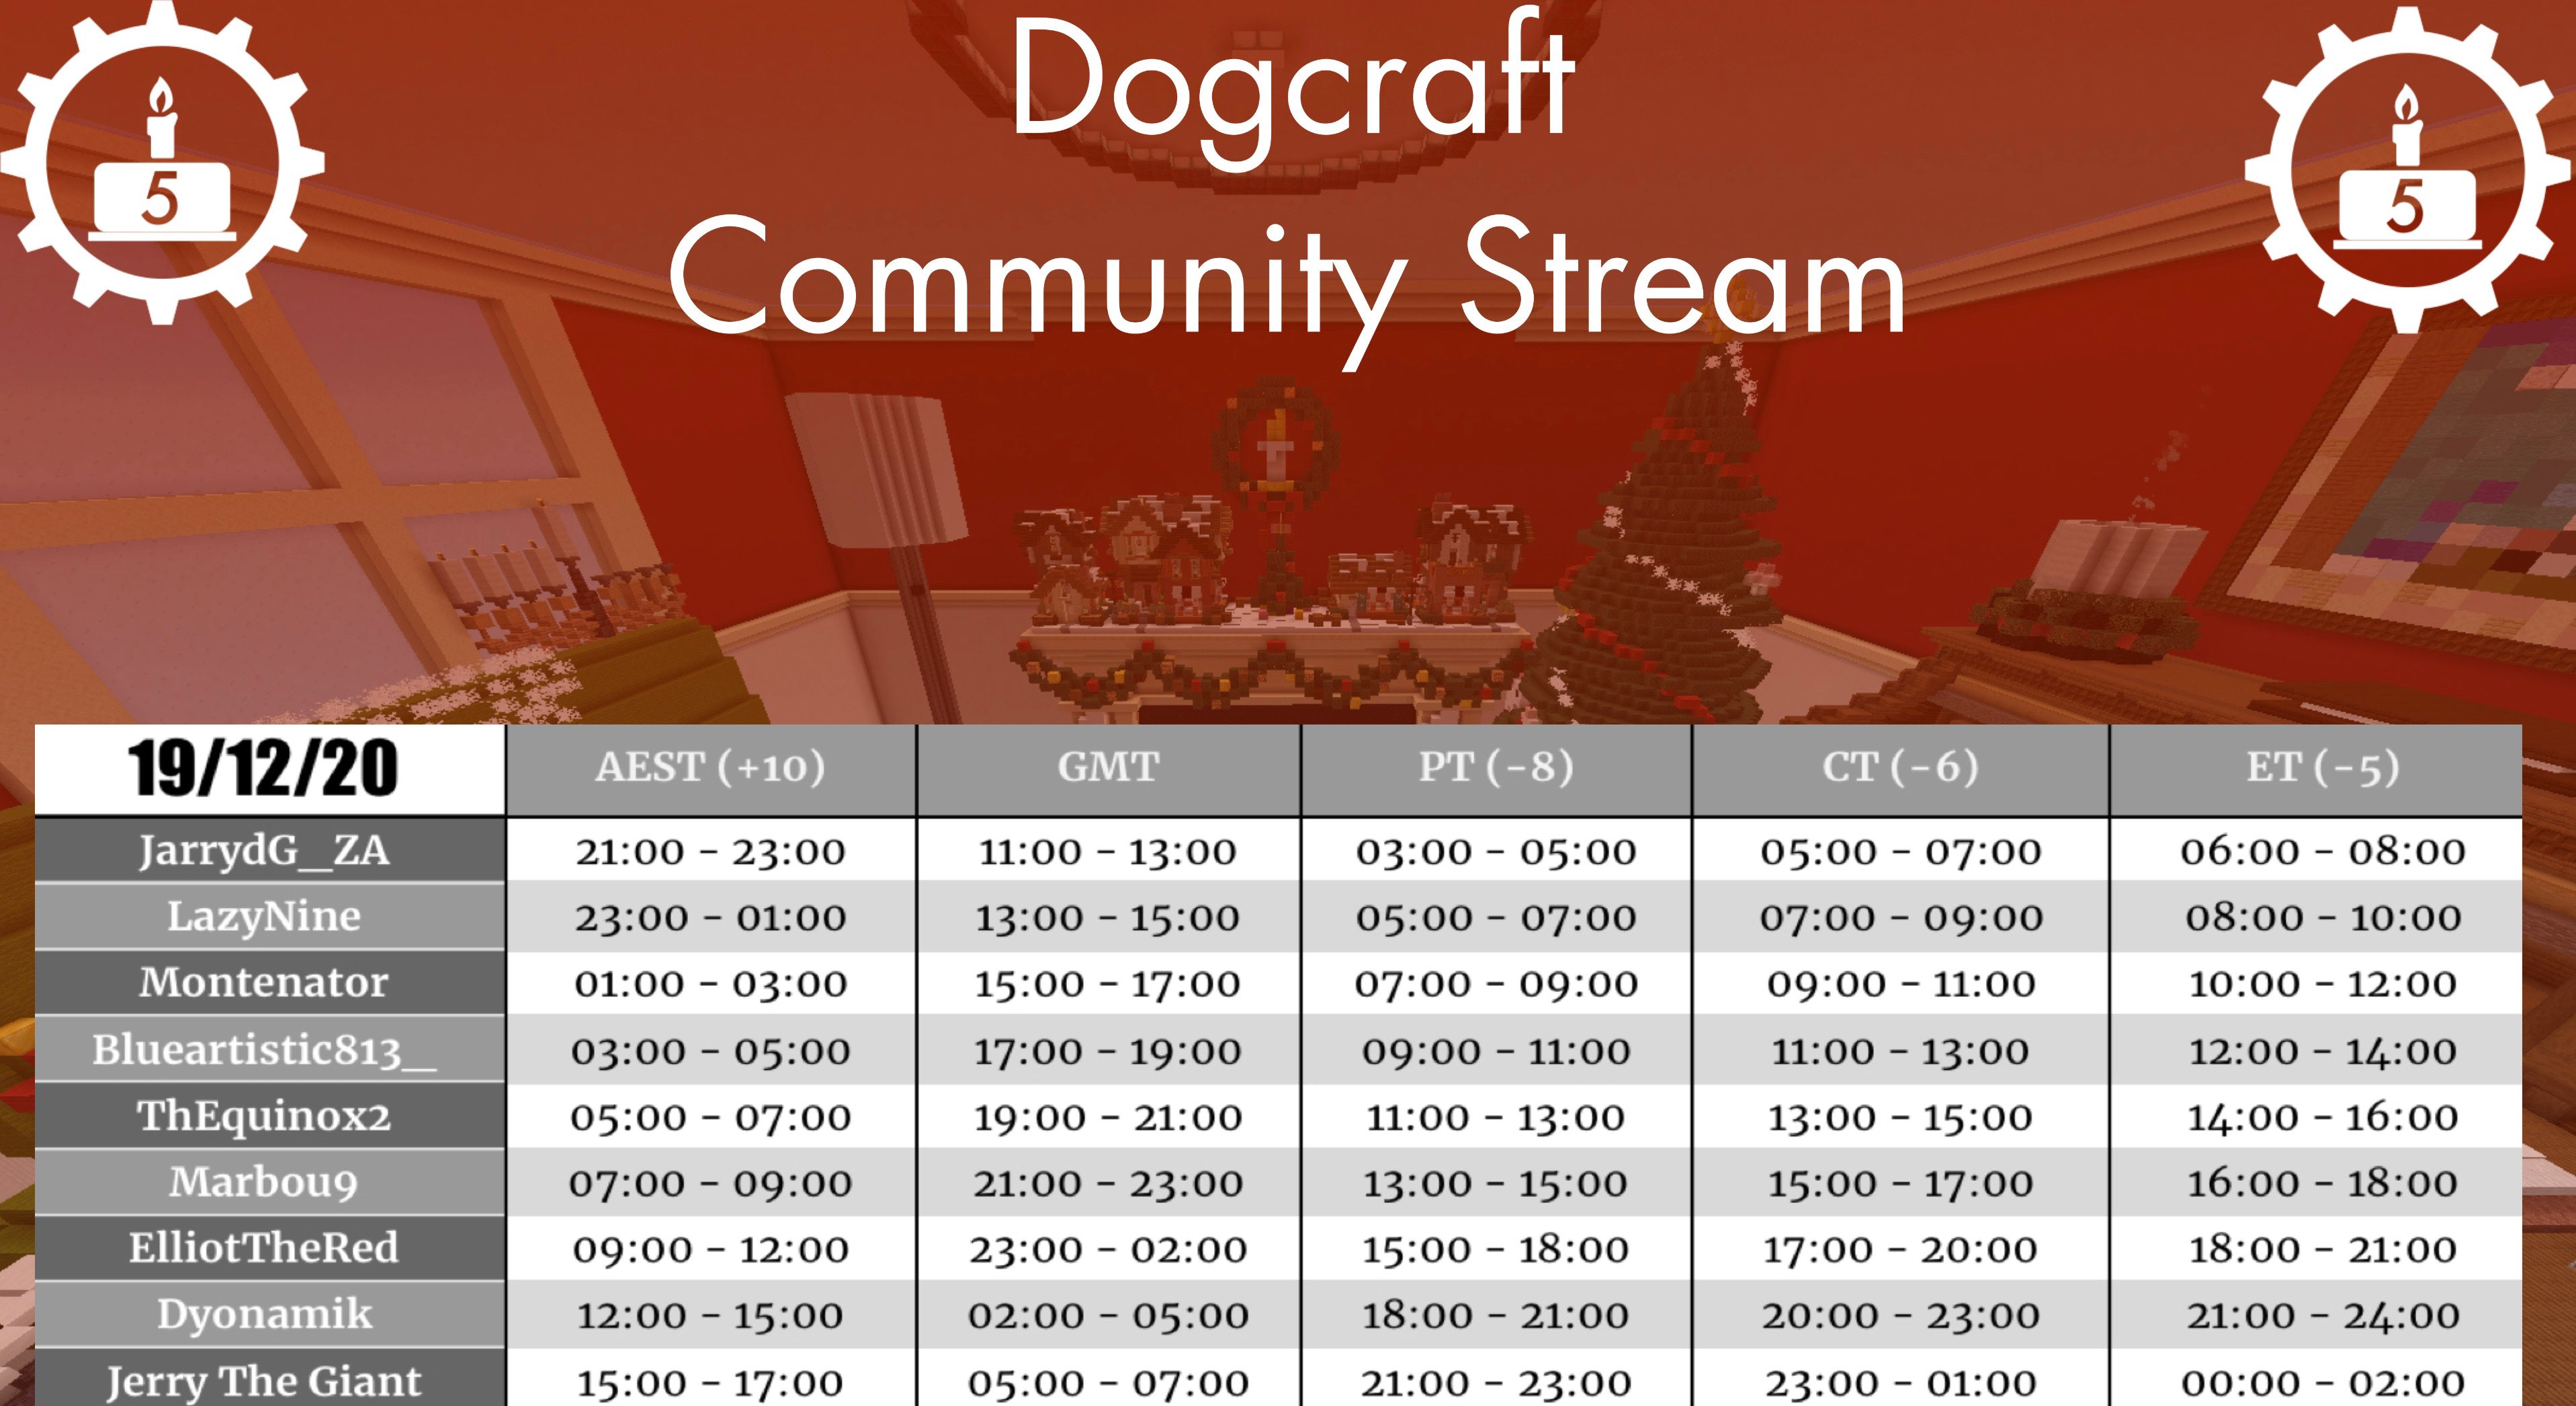 <p>@here </p> <p>:rotating_light::rotating_light: <strong>ATTENTION CYBERDOGS</strong> :rotating_light::rotating_light:</p> <p><strong><strong>STREAM Day INCOMING</strong></strong></p> <p>Commencing at 11AM GMT and running till 7AM the next day. </p> <p>Yes. That's 21hrs of non-stop <em>maniacal</em> entertainment, coming fresh to your eyeballs :eye: :eye: </p> <p><em>But what's the lineup you asked?</em></p> <p>I'm glad you asked. Here it is, in GMT times:</p> <p>11am - 1pm: <code>JarrydG_ZA</code> 1pm - 3pm: <code>LazyNine</code> 3pm - 5pm: <code>Montenator</code> 5pm - 7pm: <code>blueartistic813_</code> 7pm - 9pm: <code>TheEquinox2</code> 9pm - 11pm: <code>Marbou9</code> 11pm - 2am: <code>ElliotTheRed</code> 2am - 5am: <code>Dyonamik</code> 5am - 7am: <code>JerryTheGiant</code></p> <p><<a target='_blank' target='_blank' target='_blank' target='_blank' target='_blank' target='_blank' target='_blank' target='_blank' target='_blank' target='_blank' target='_blank' target='_blank' target='_blank' target='_blank' target='_blank' target='_blank' target='_blank' target='_blank' href=